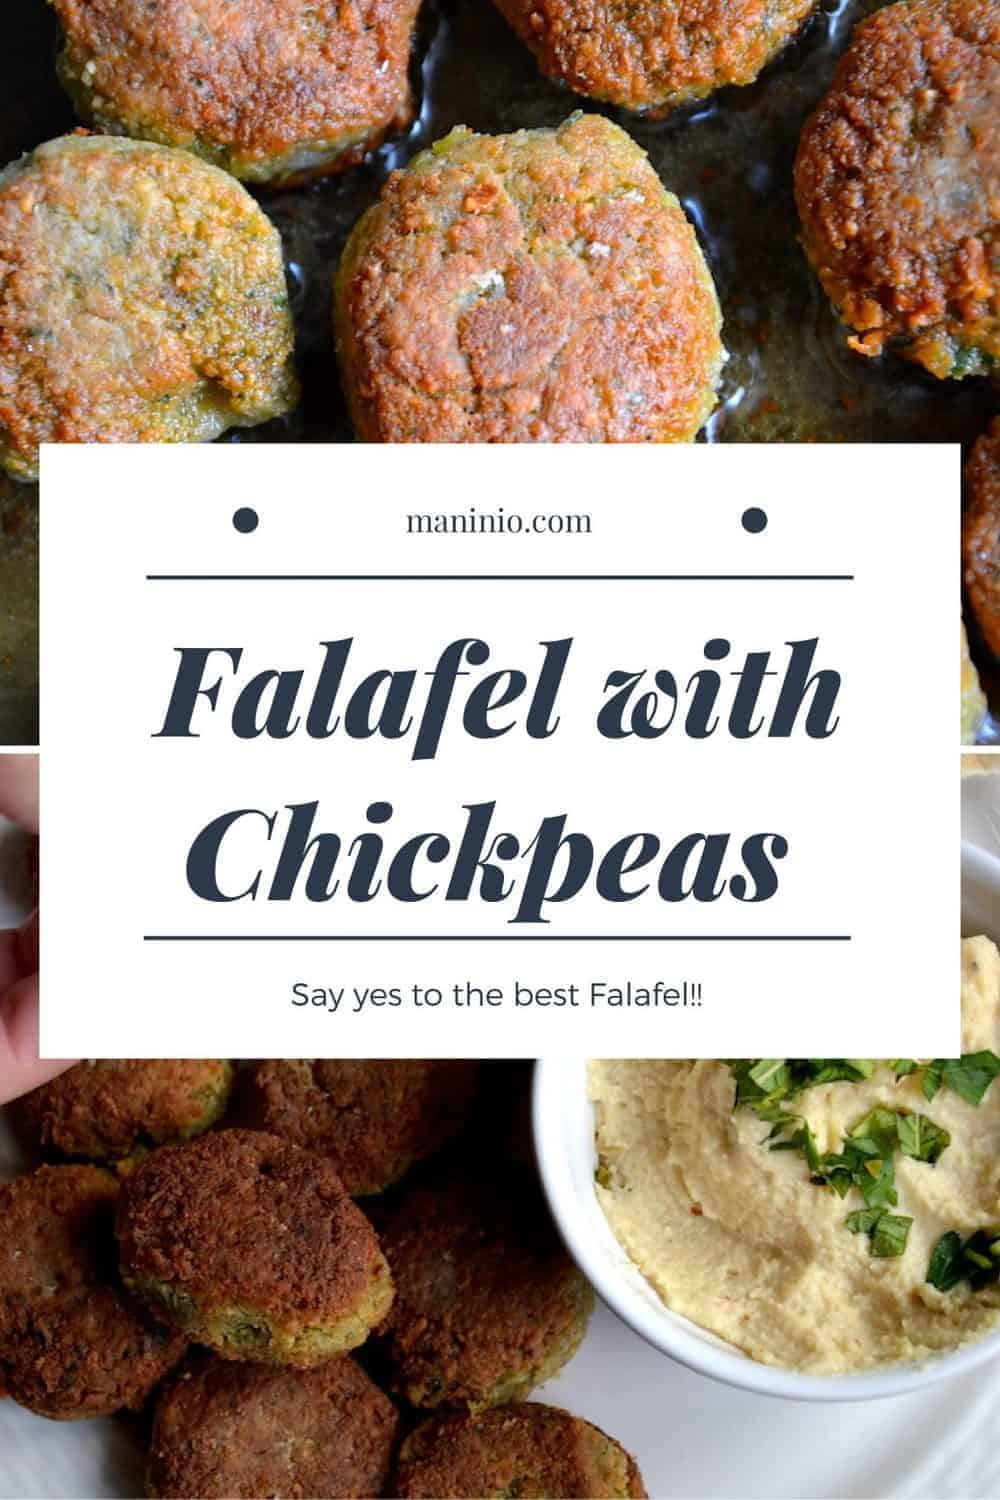 The best Original Falafel with Chickpeas | Middle East. maninio.com #chickpeasfalafel #arabicfalafe